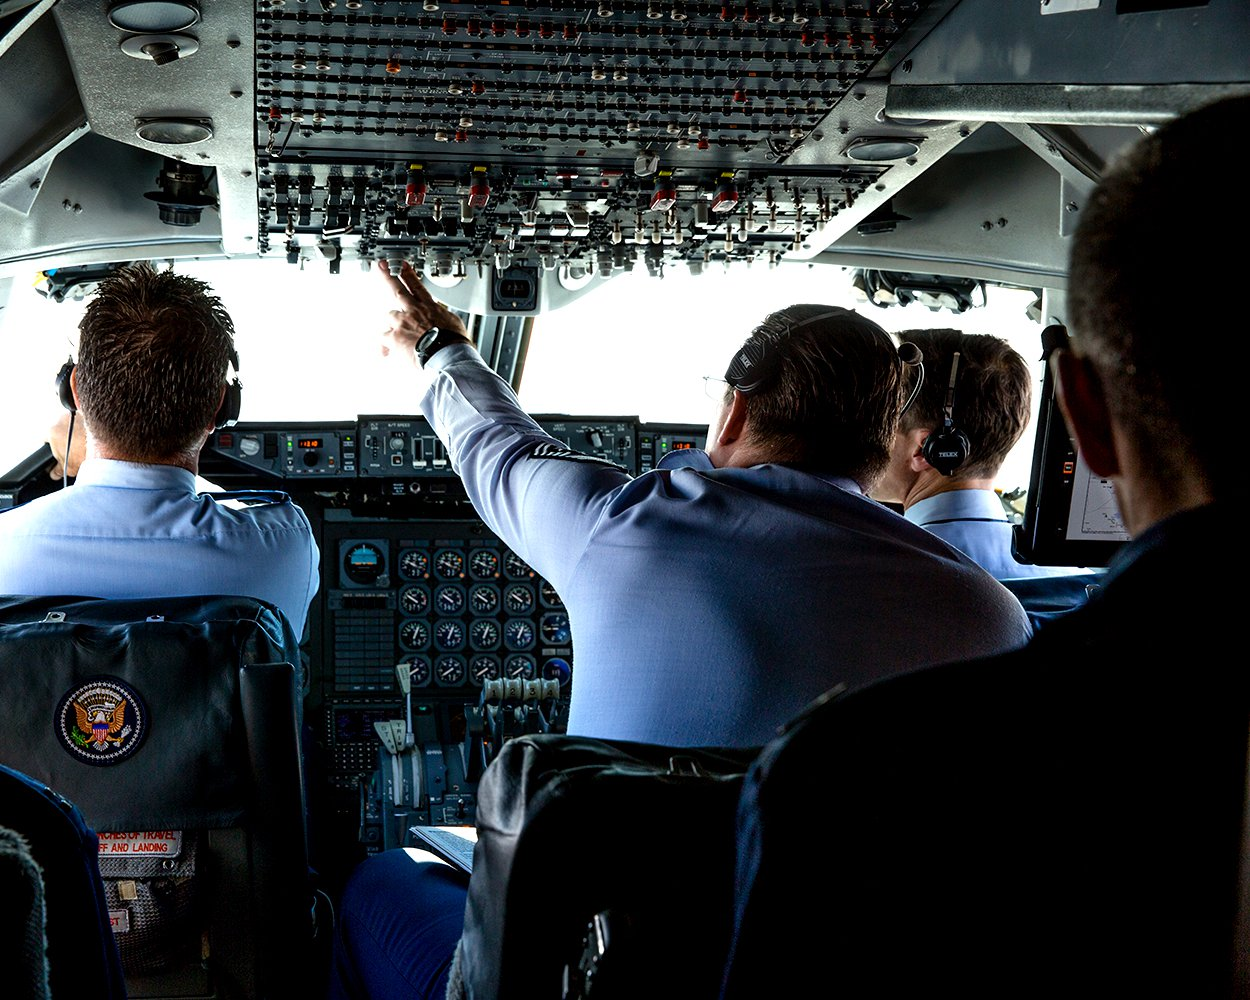 PRESIDENT BARACK OBAMA DROPS BY THE AIR FORCE ONE COCKPIT - 8X10 PHOTO (AB-142)